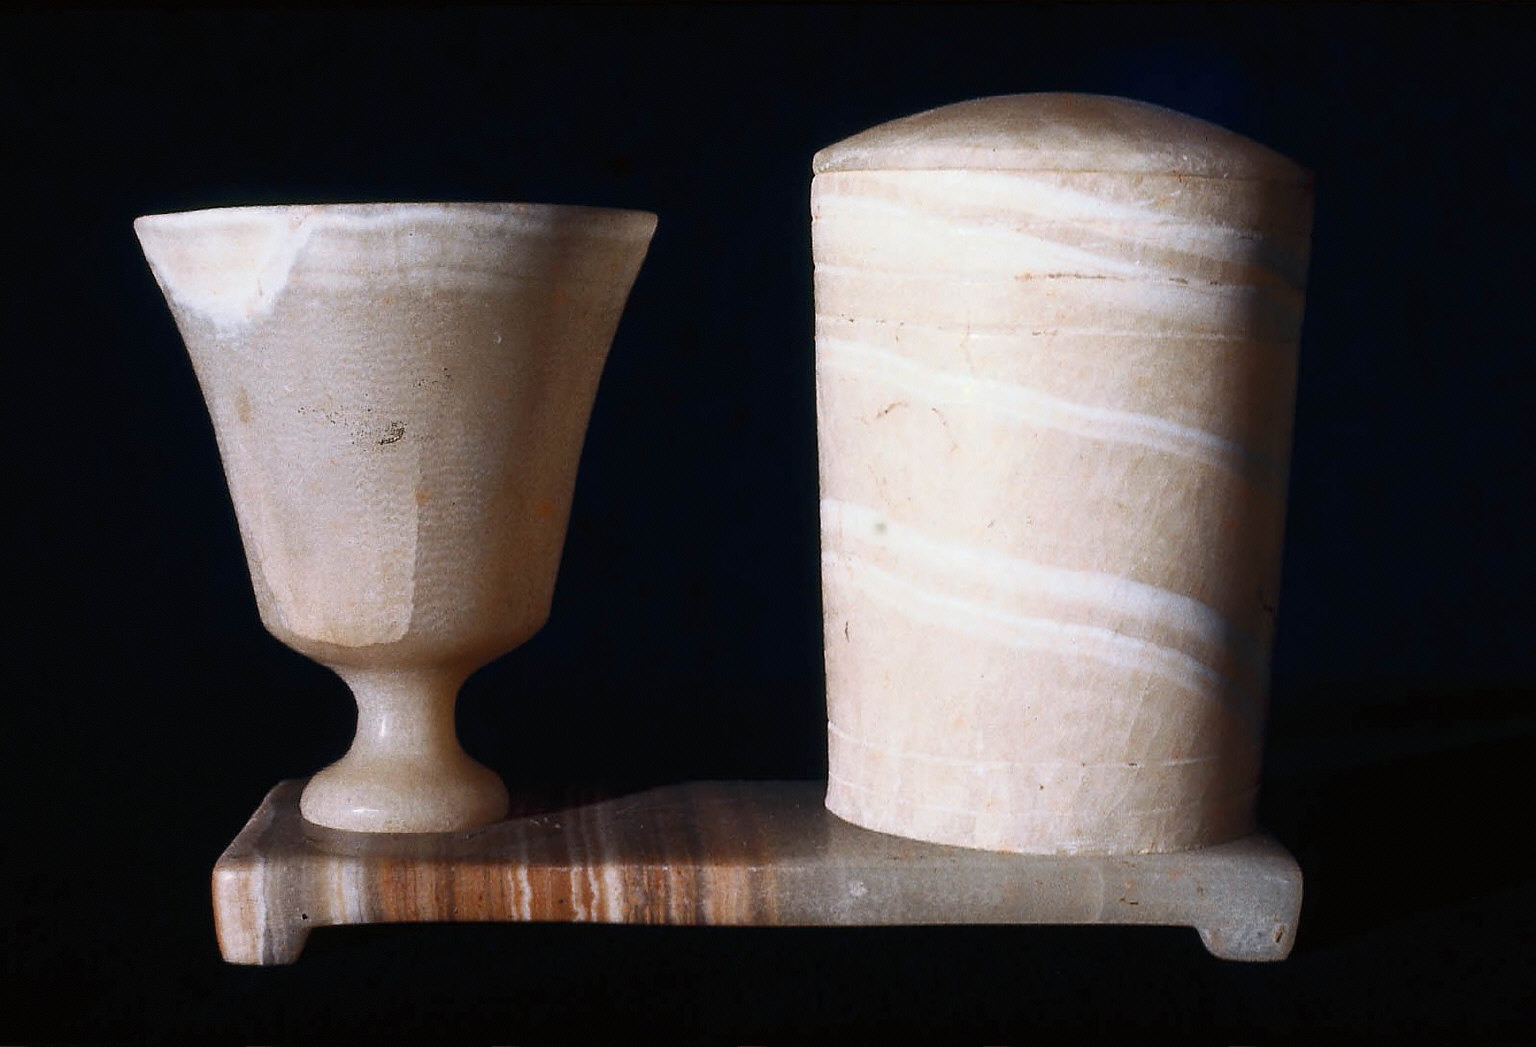 Goblet and cylindrical vase in stand